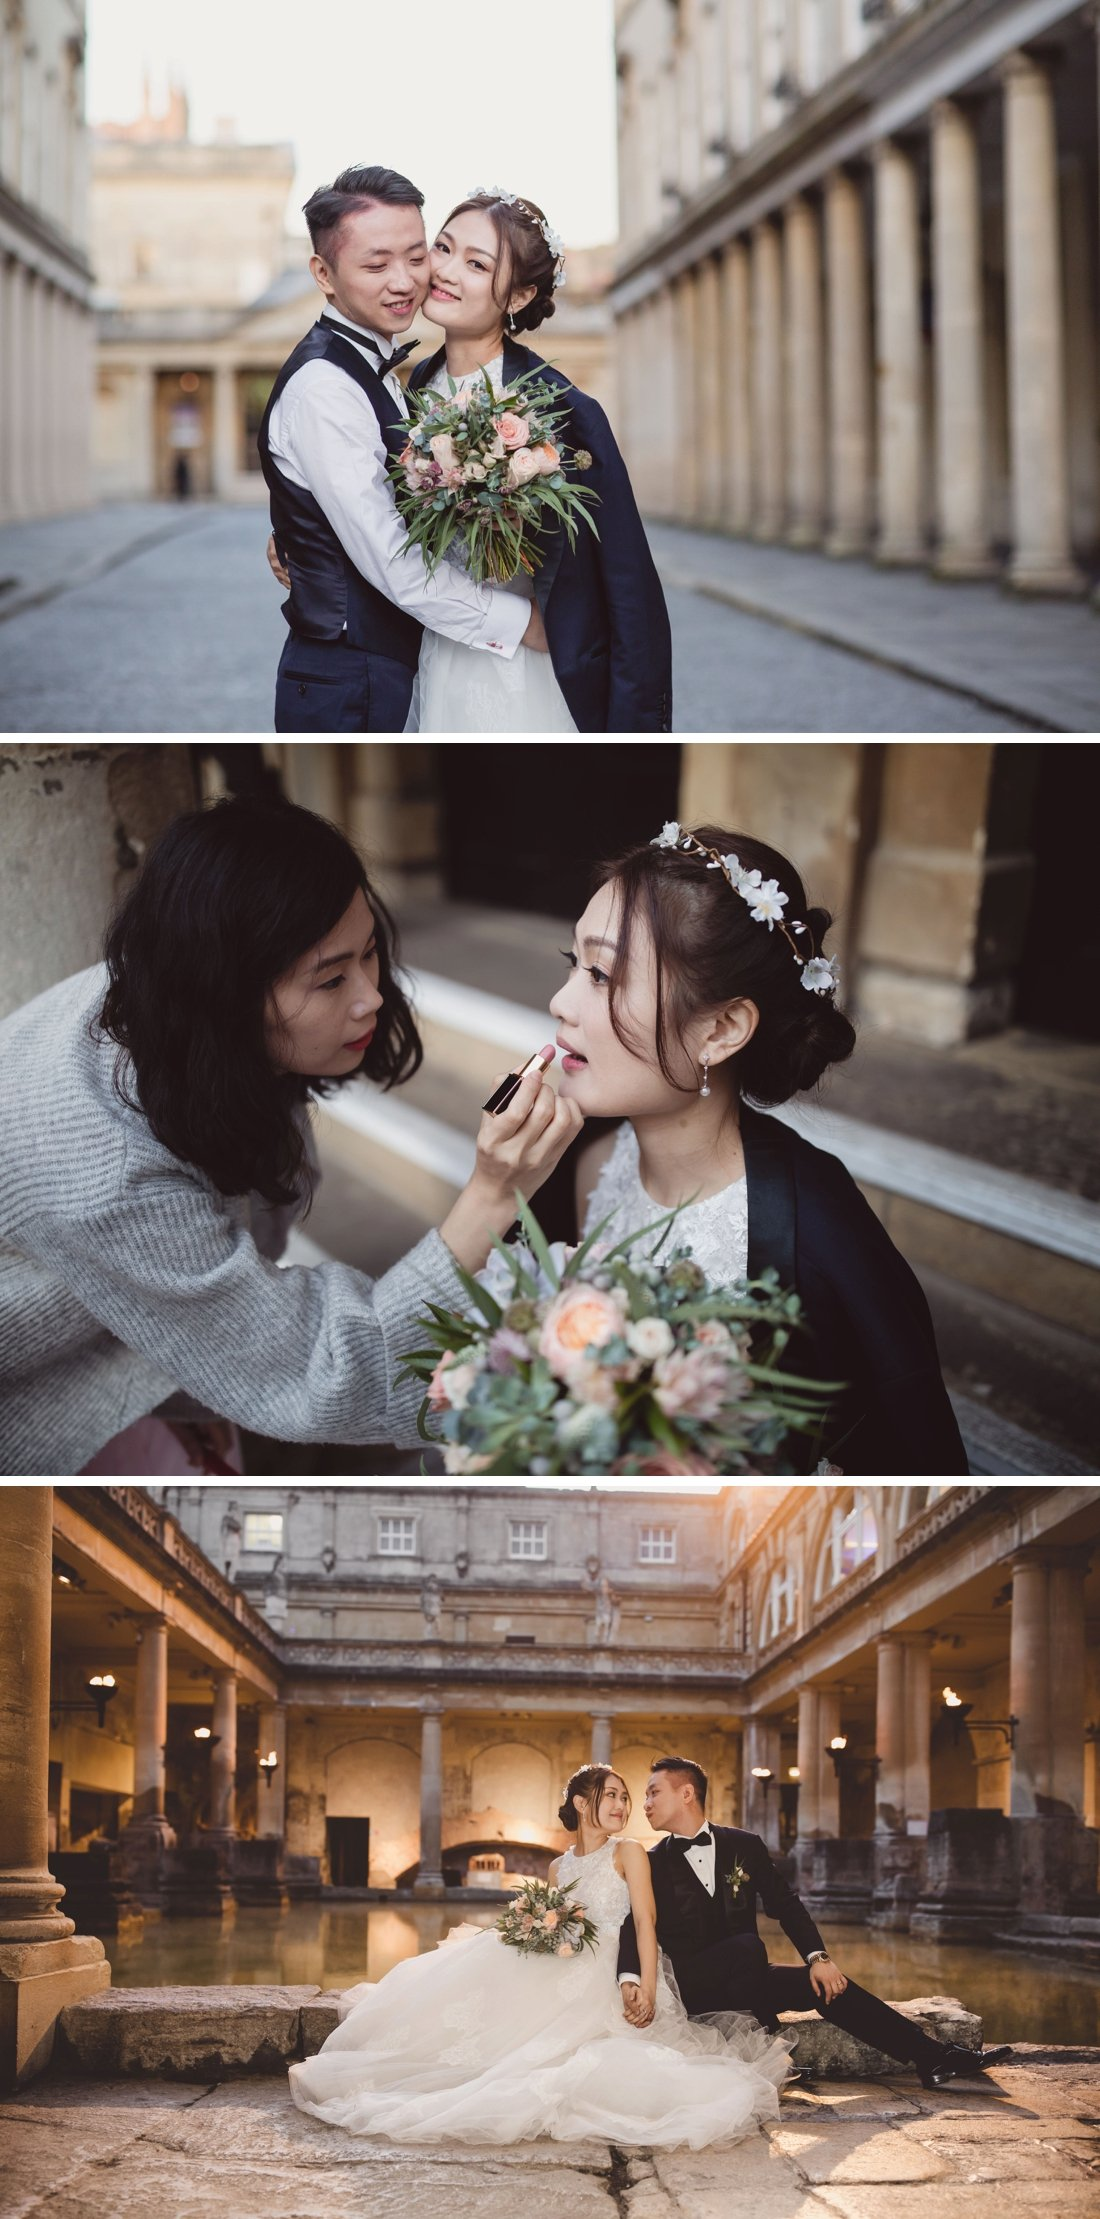 Chinese Wedding Photography in Bath